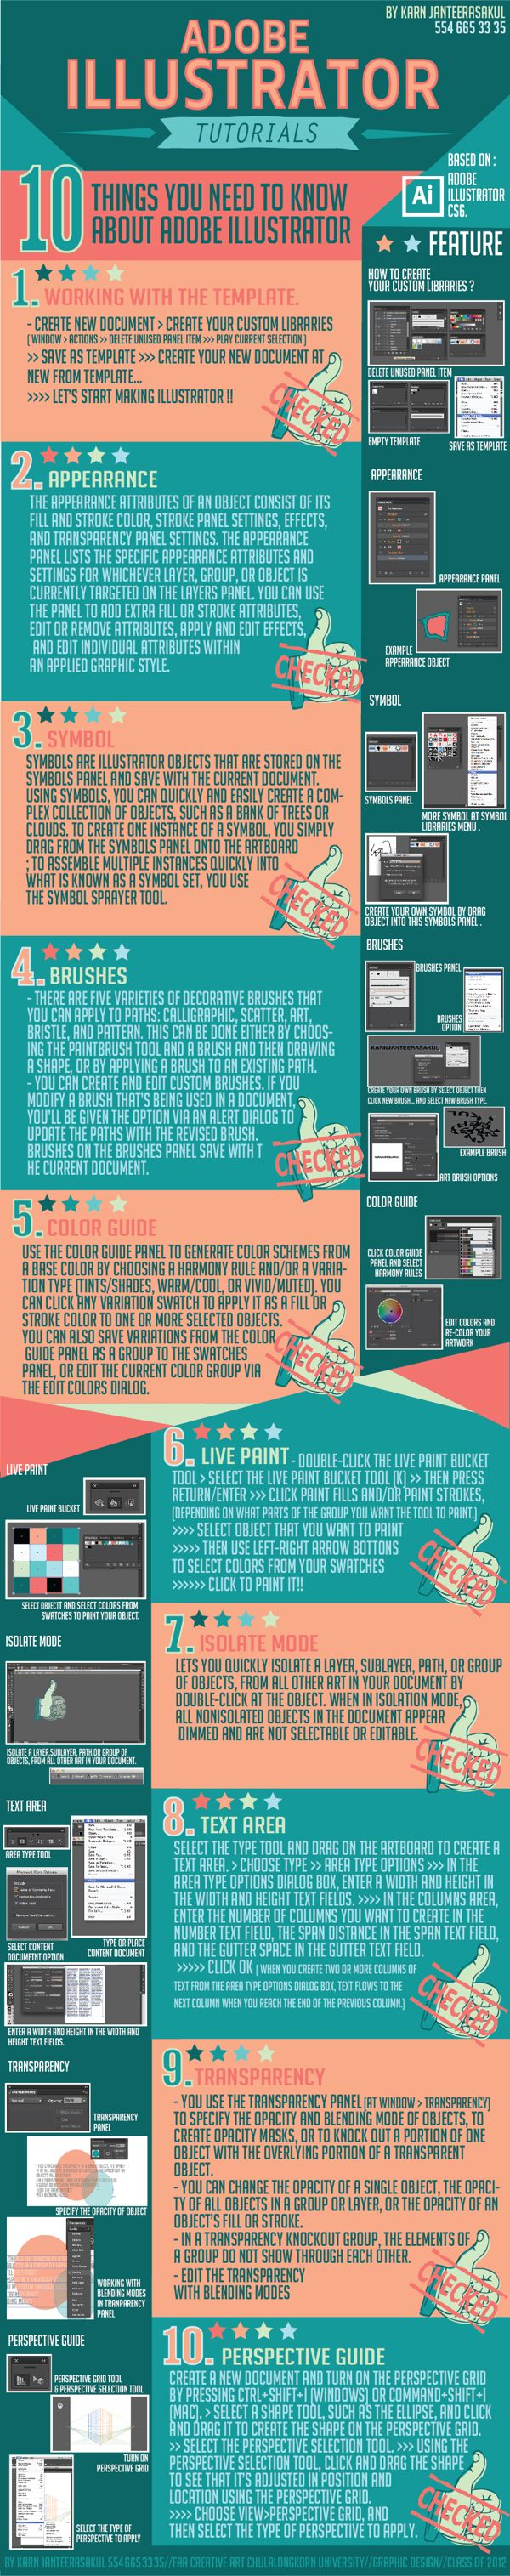 Adobe illustrator Tutorials Infographic by Karn Janteerasakul, via Behance